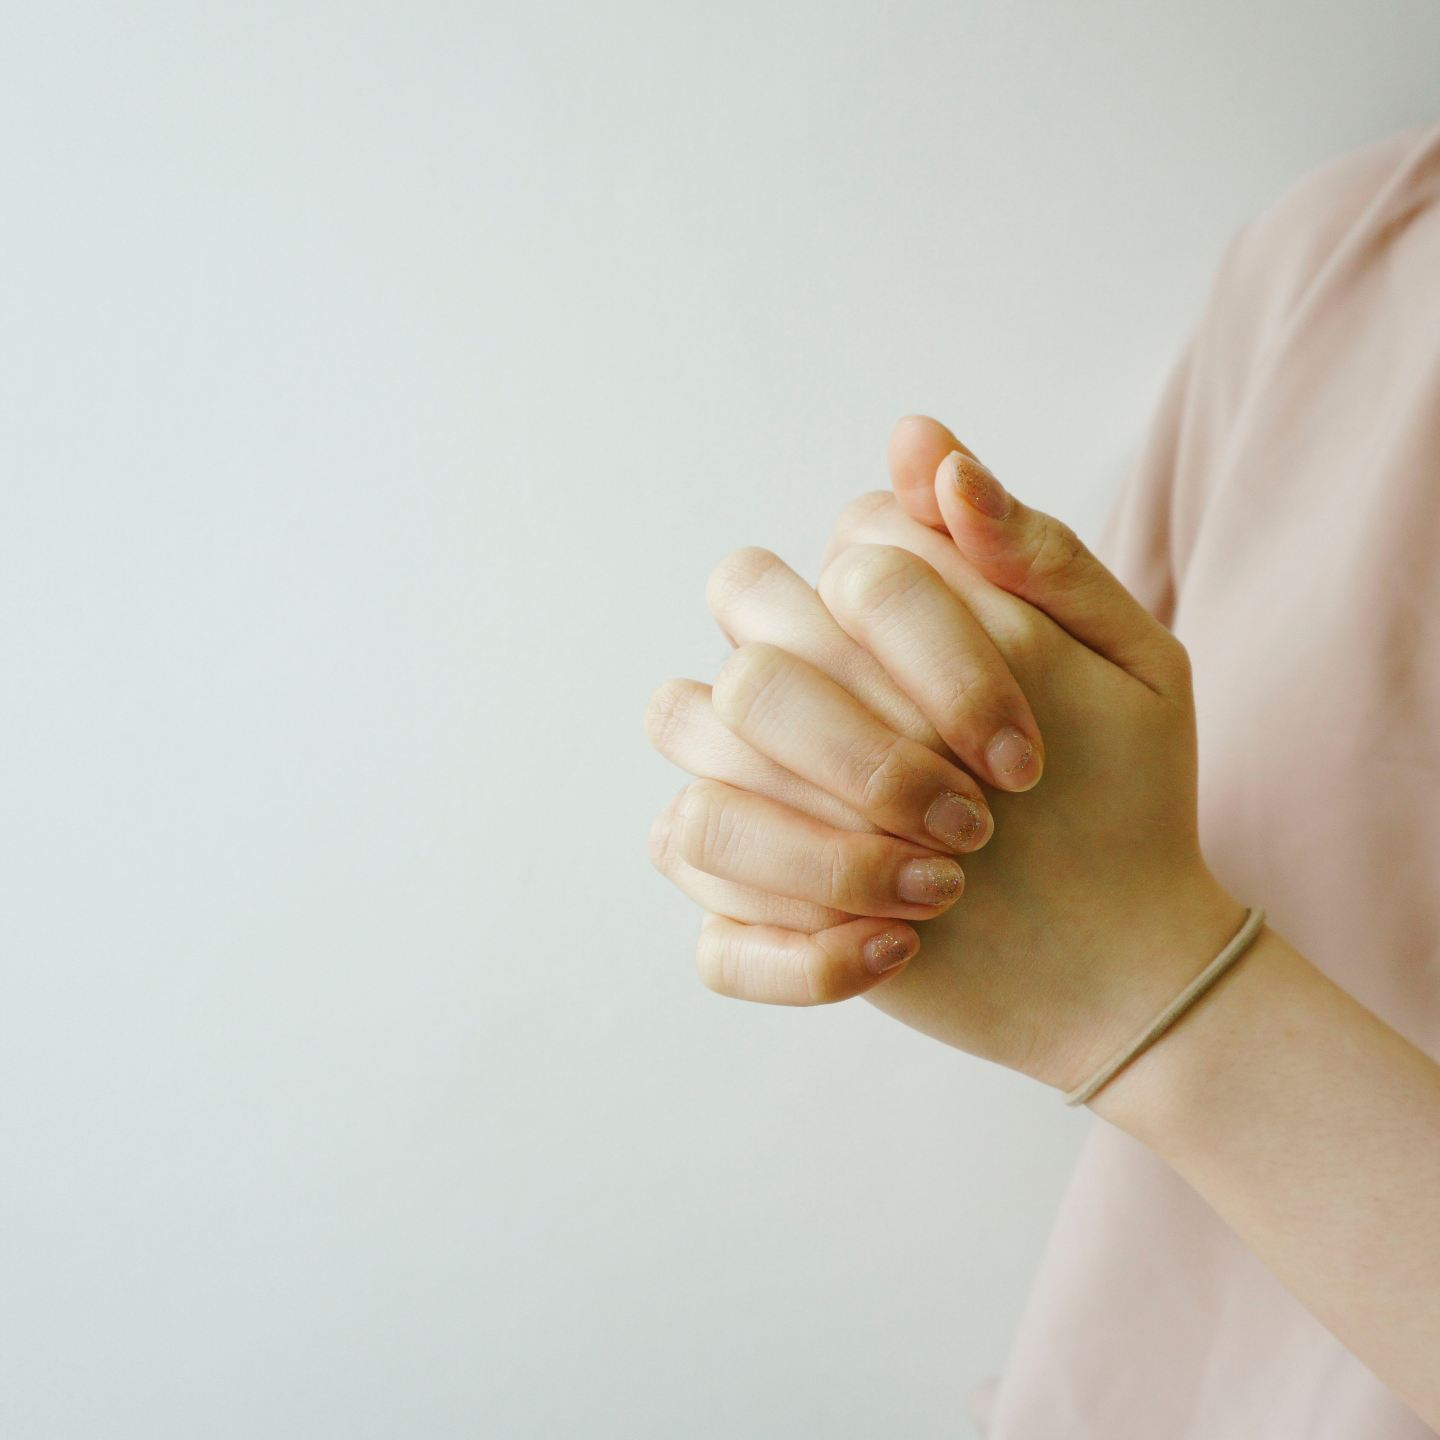 All I can Do is Pray [Day 16: PRAY]